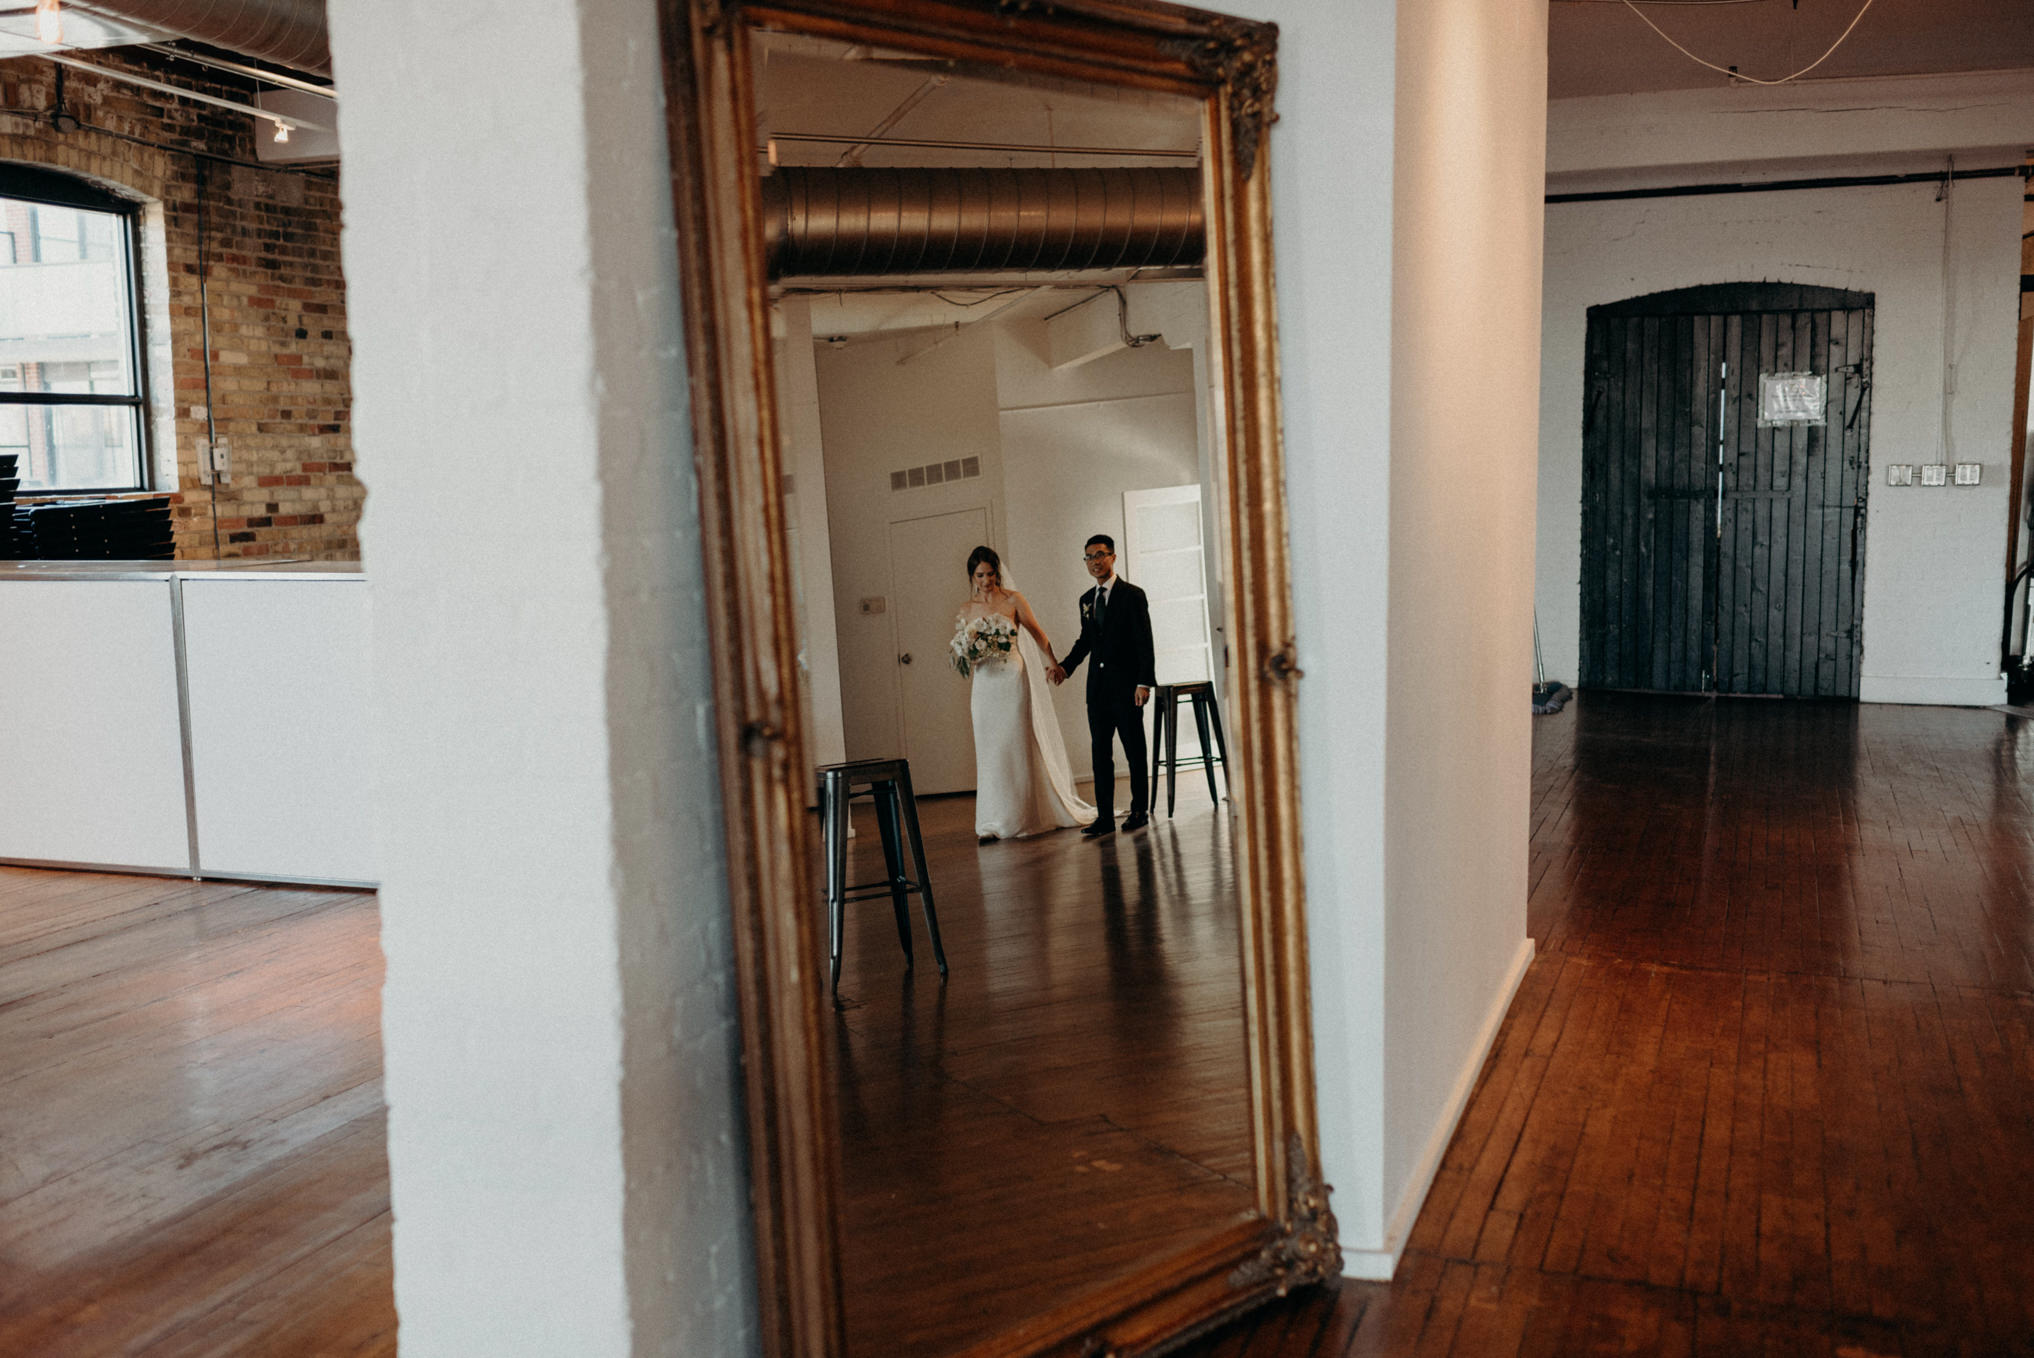 reflection of bride and groom in mirror holding hands and walking inside old loft